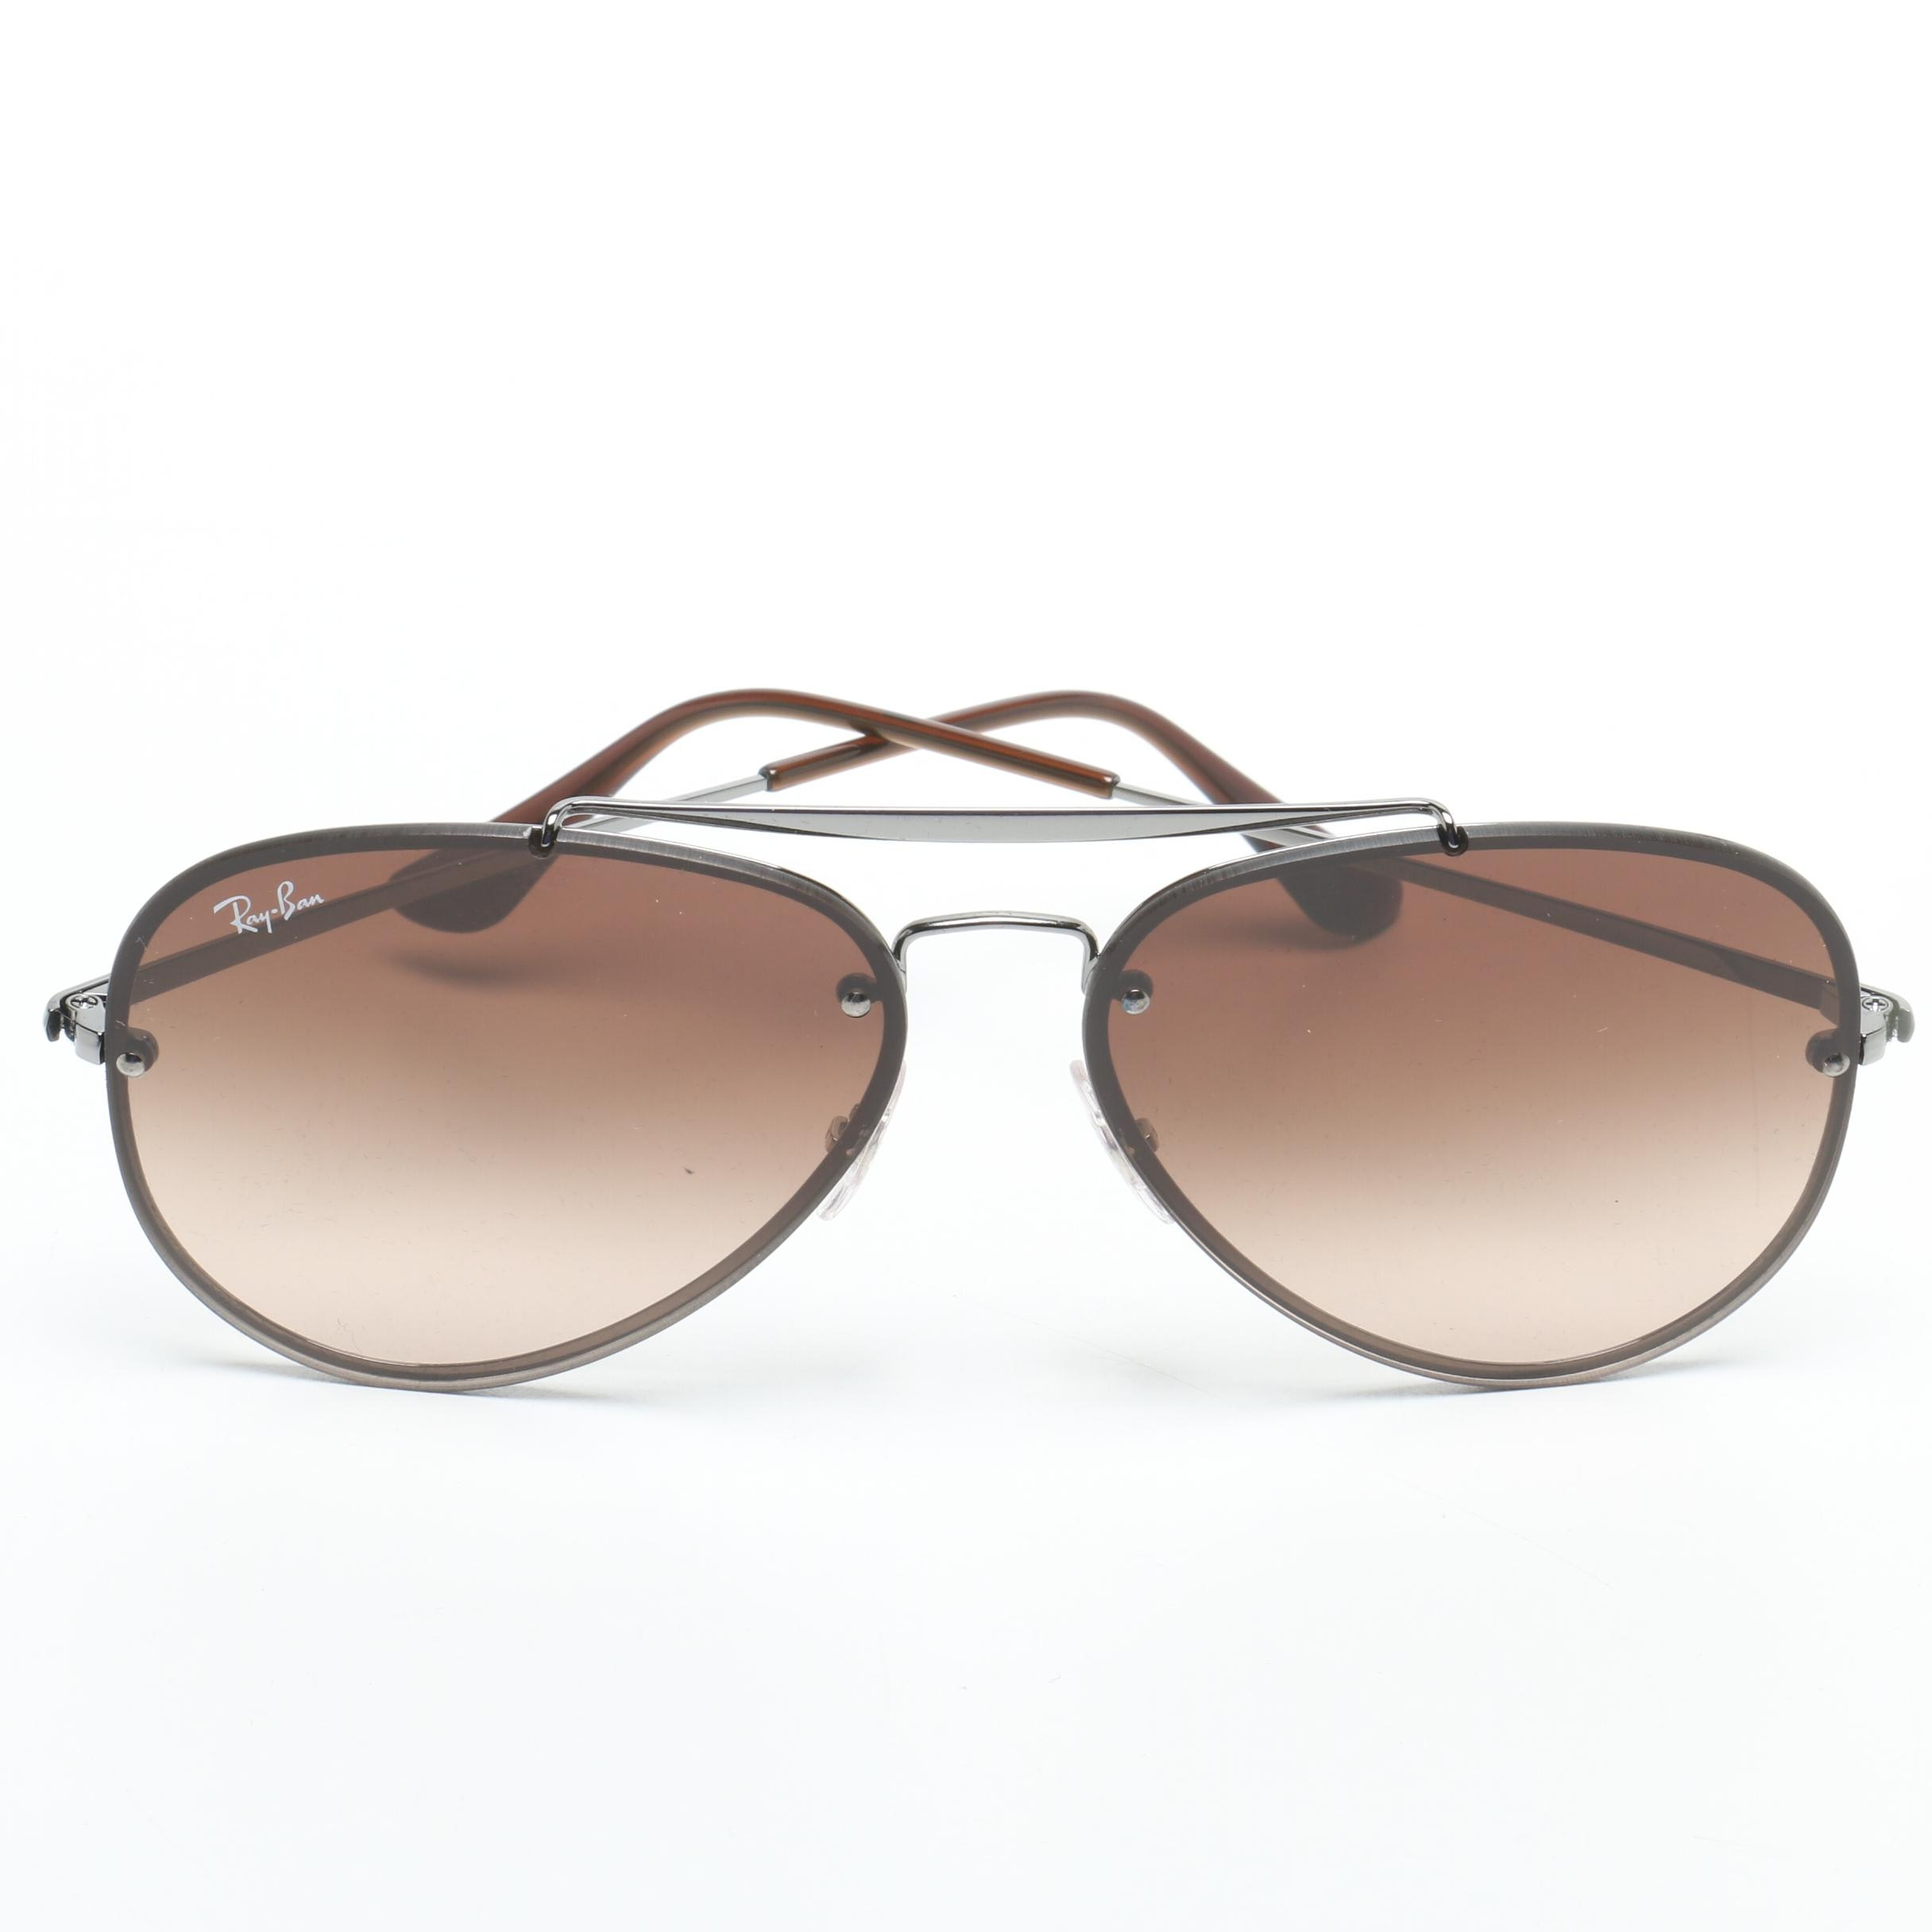 Ray-Ban Rimless Brown and Gunmetal Gray Aviator Sunglasses with Case